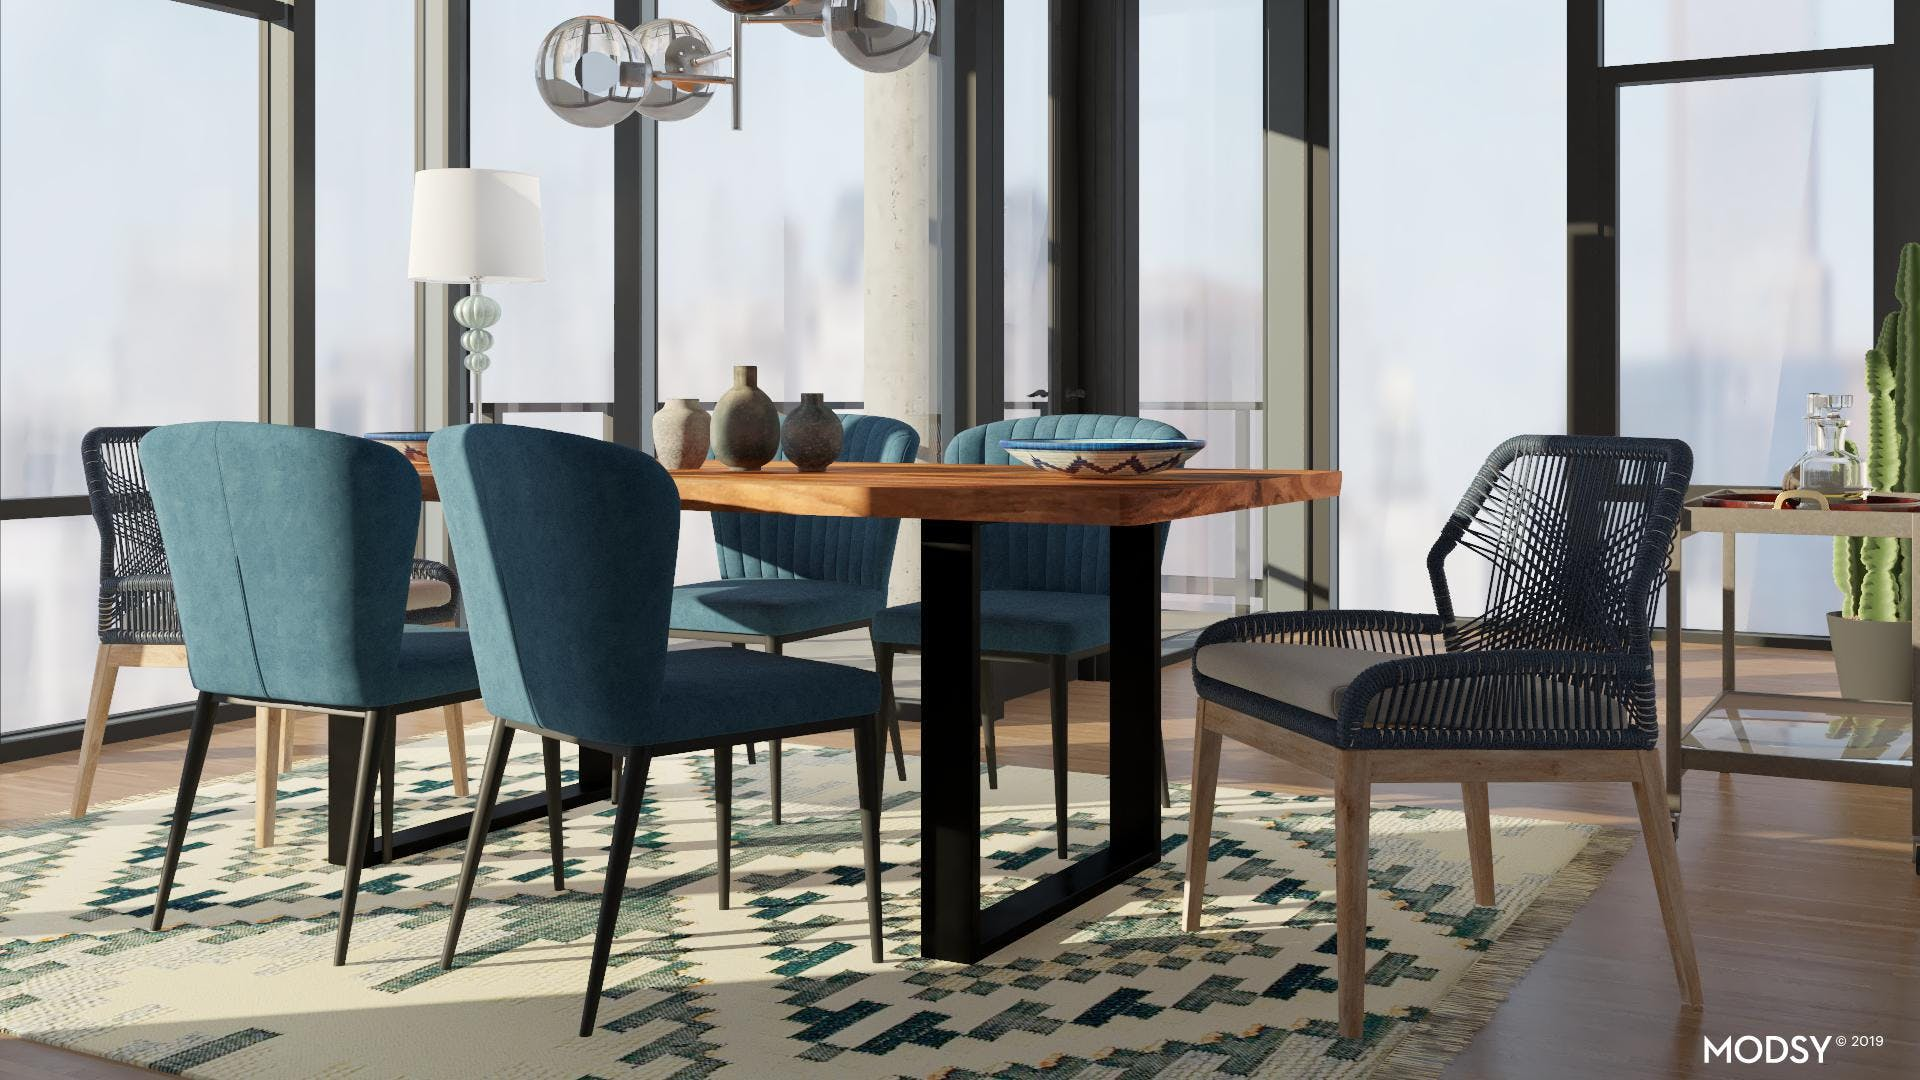 Eclectic Chair Mix